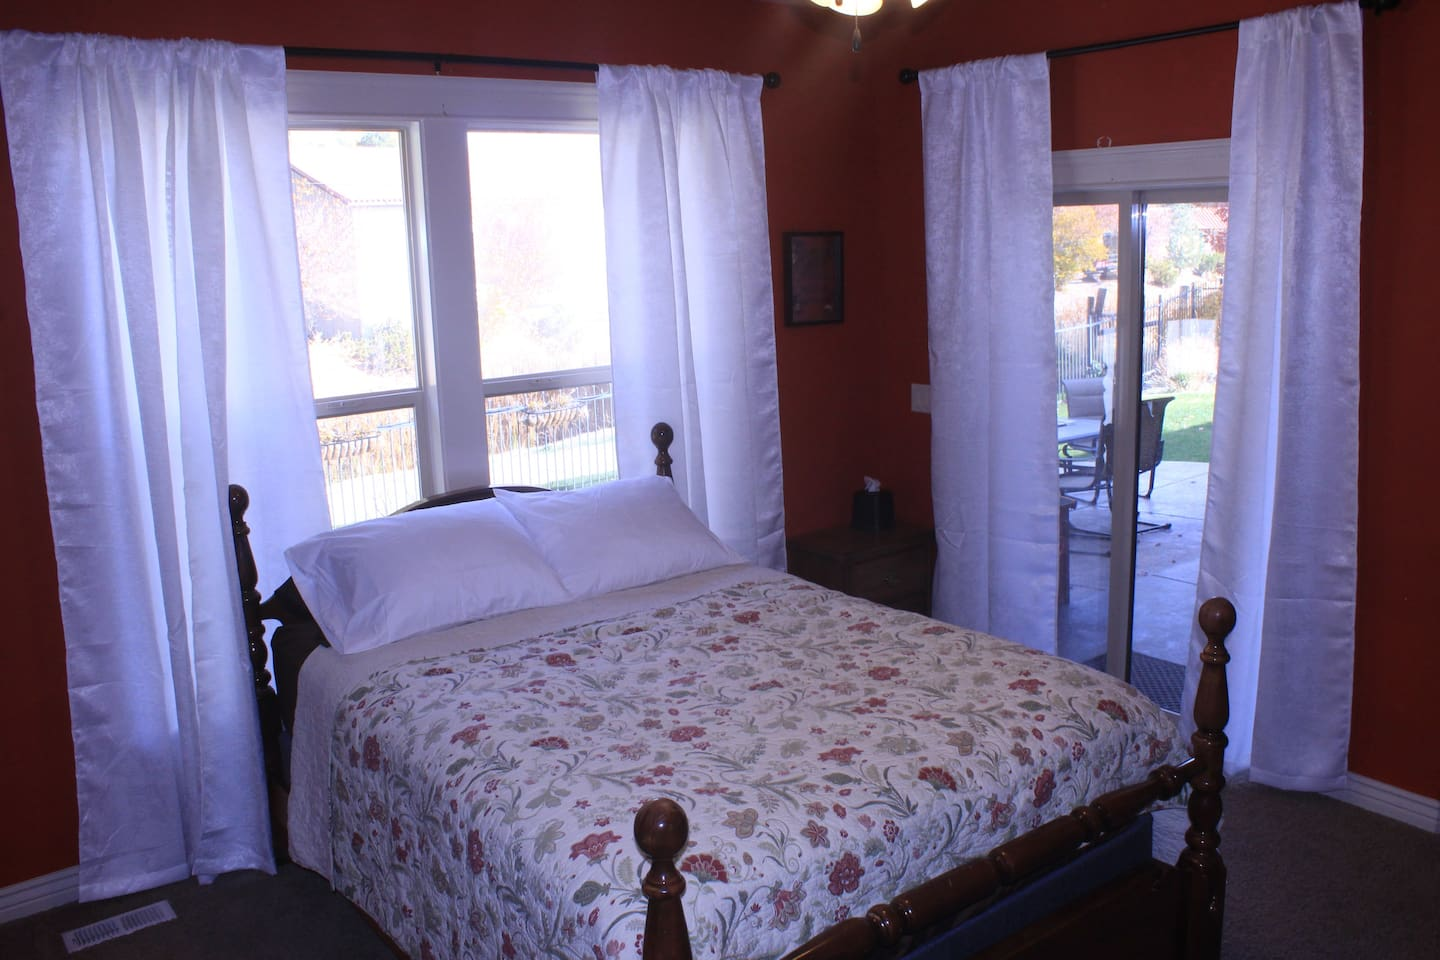 queen bedroom suite, private entrance, and access to the patio for fresh air